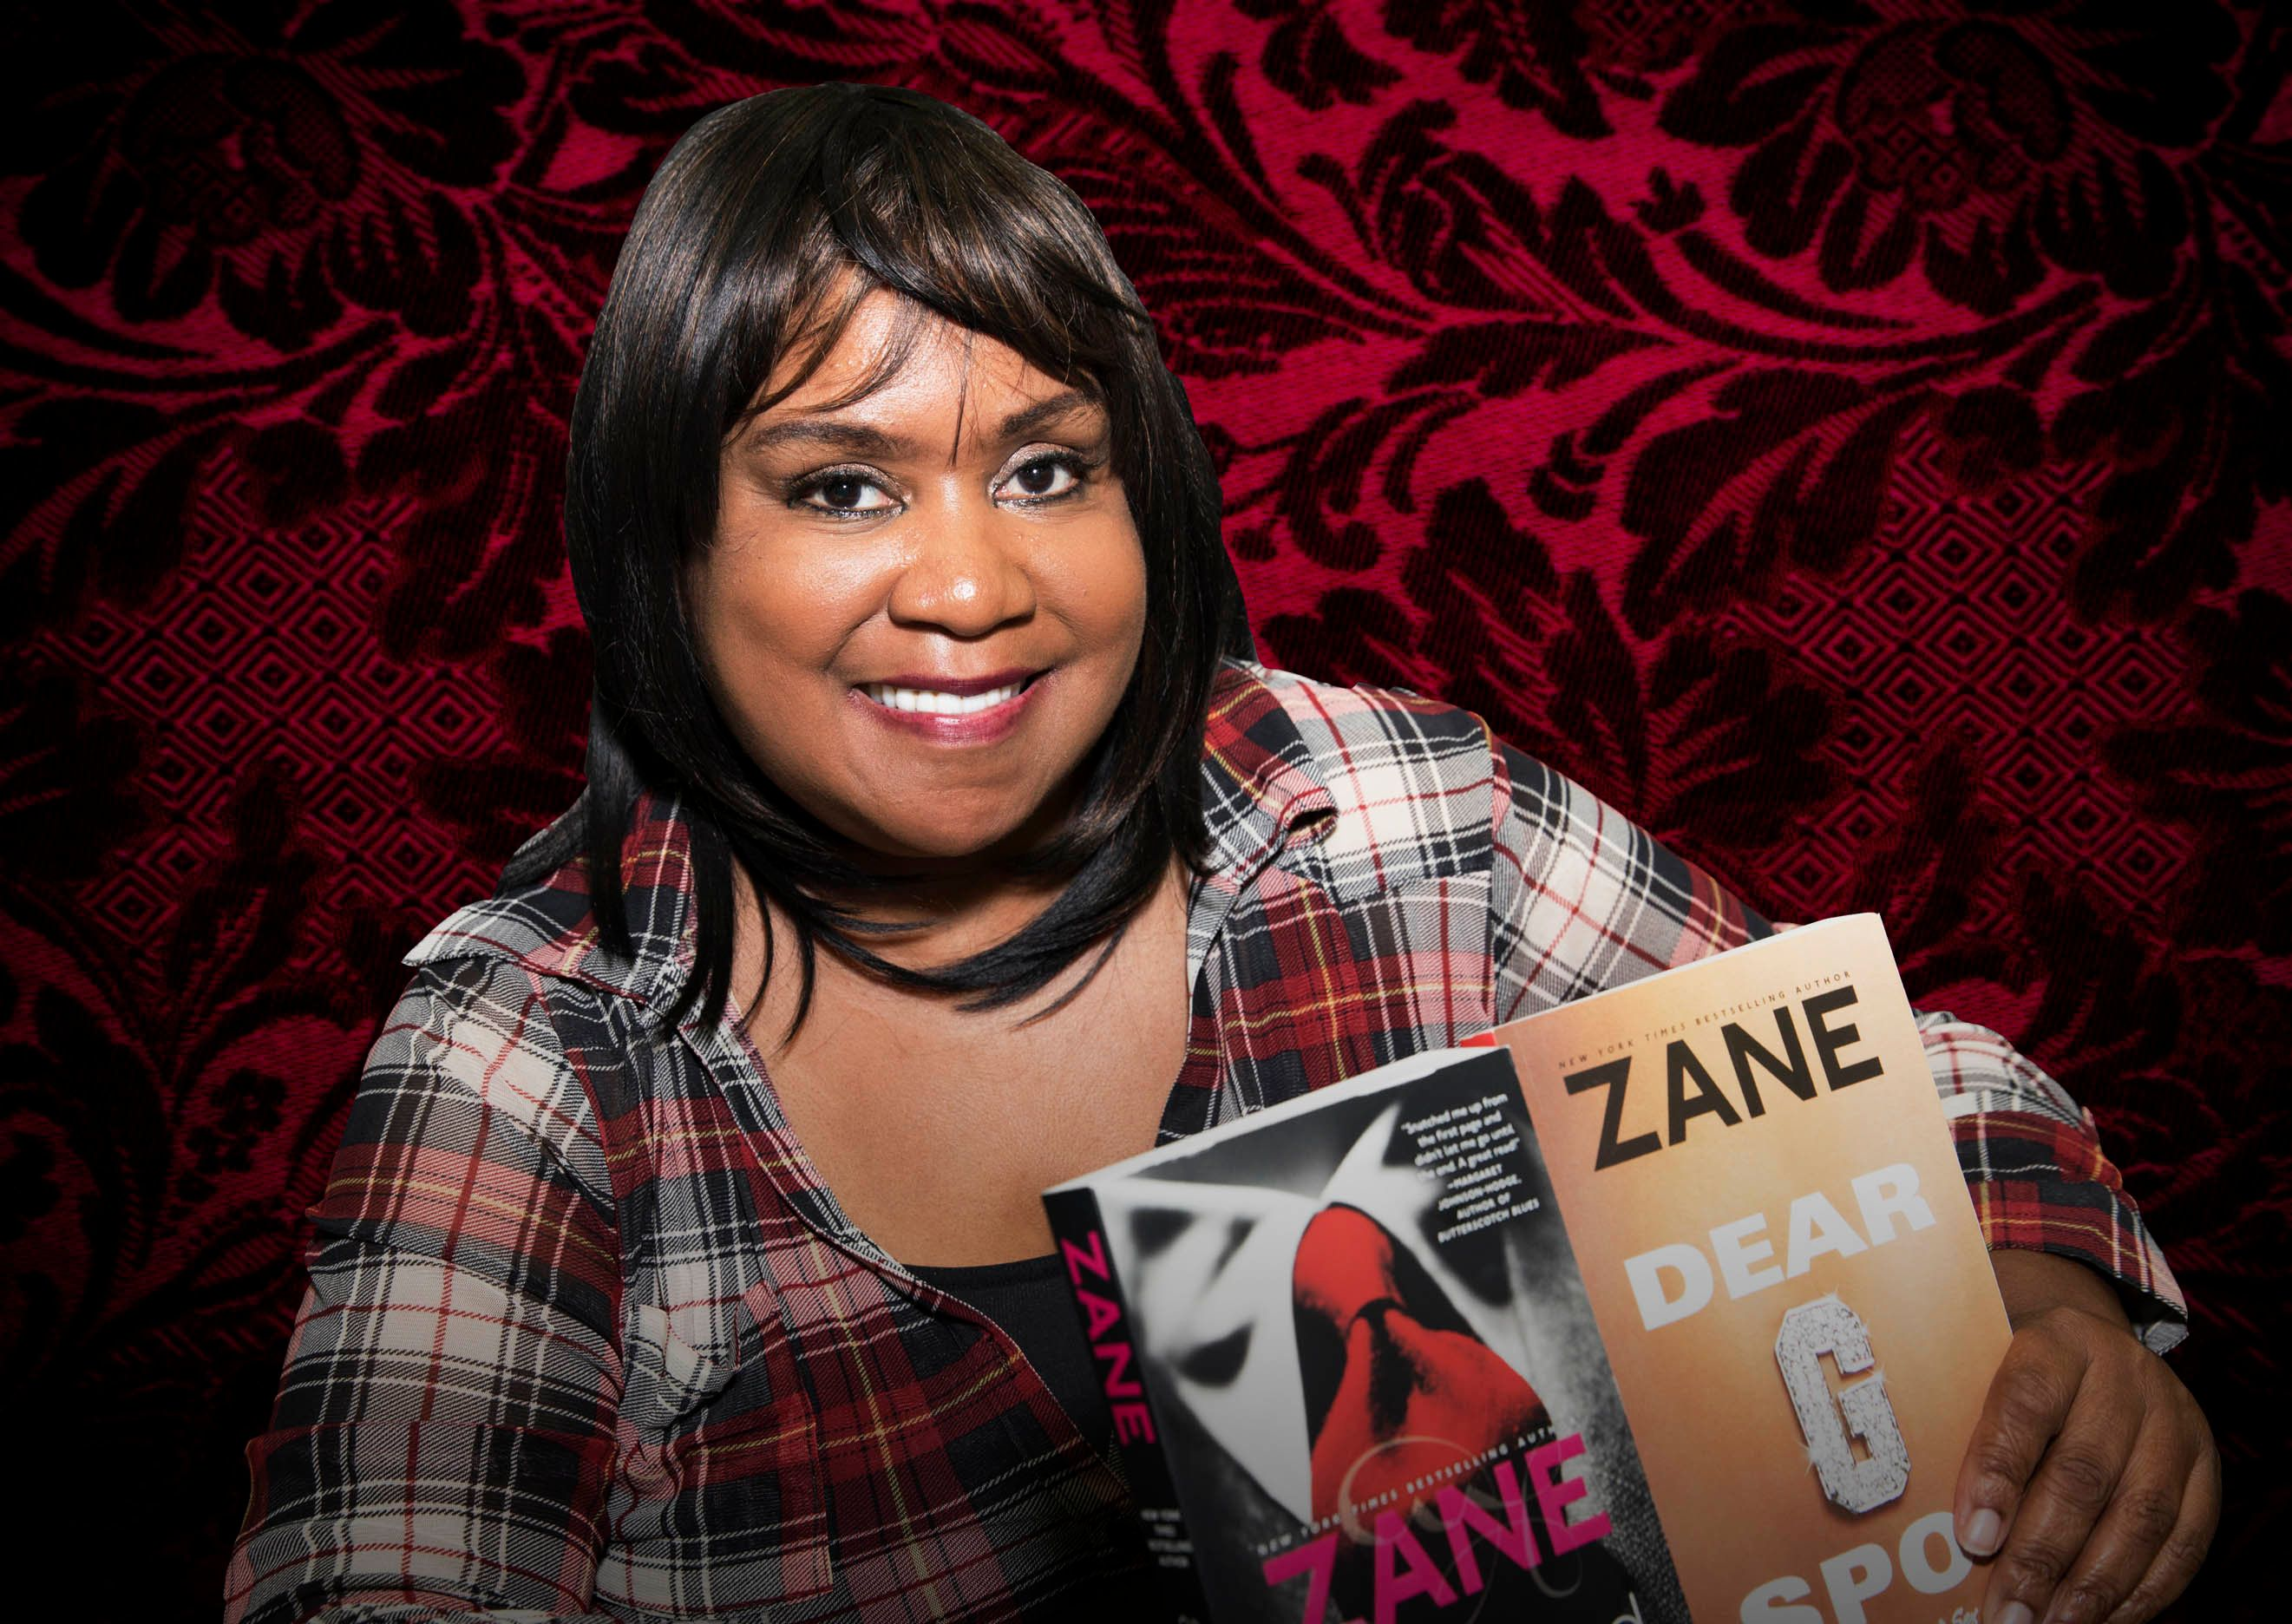 Zane's erotica helped a generation of black women embrace their sexuality.